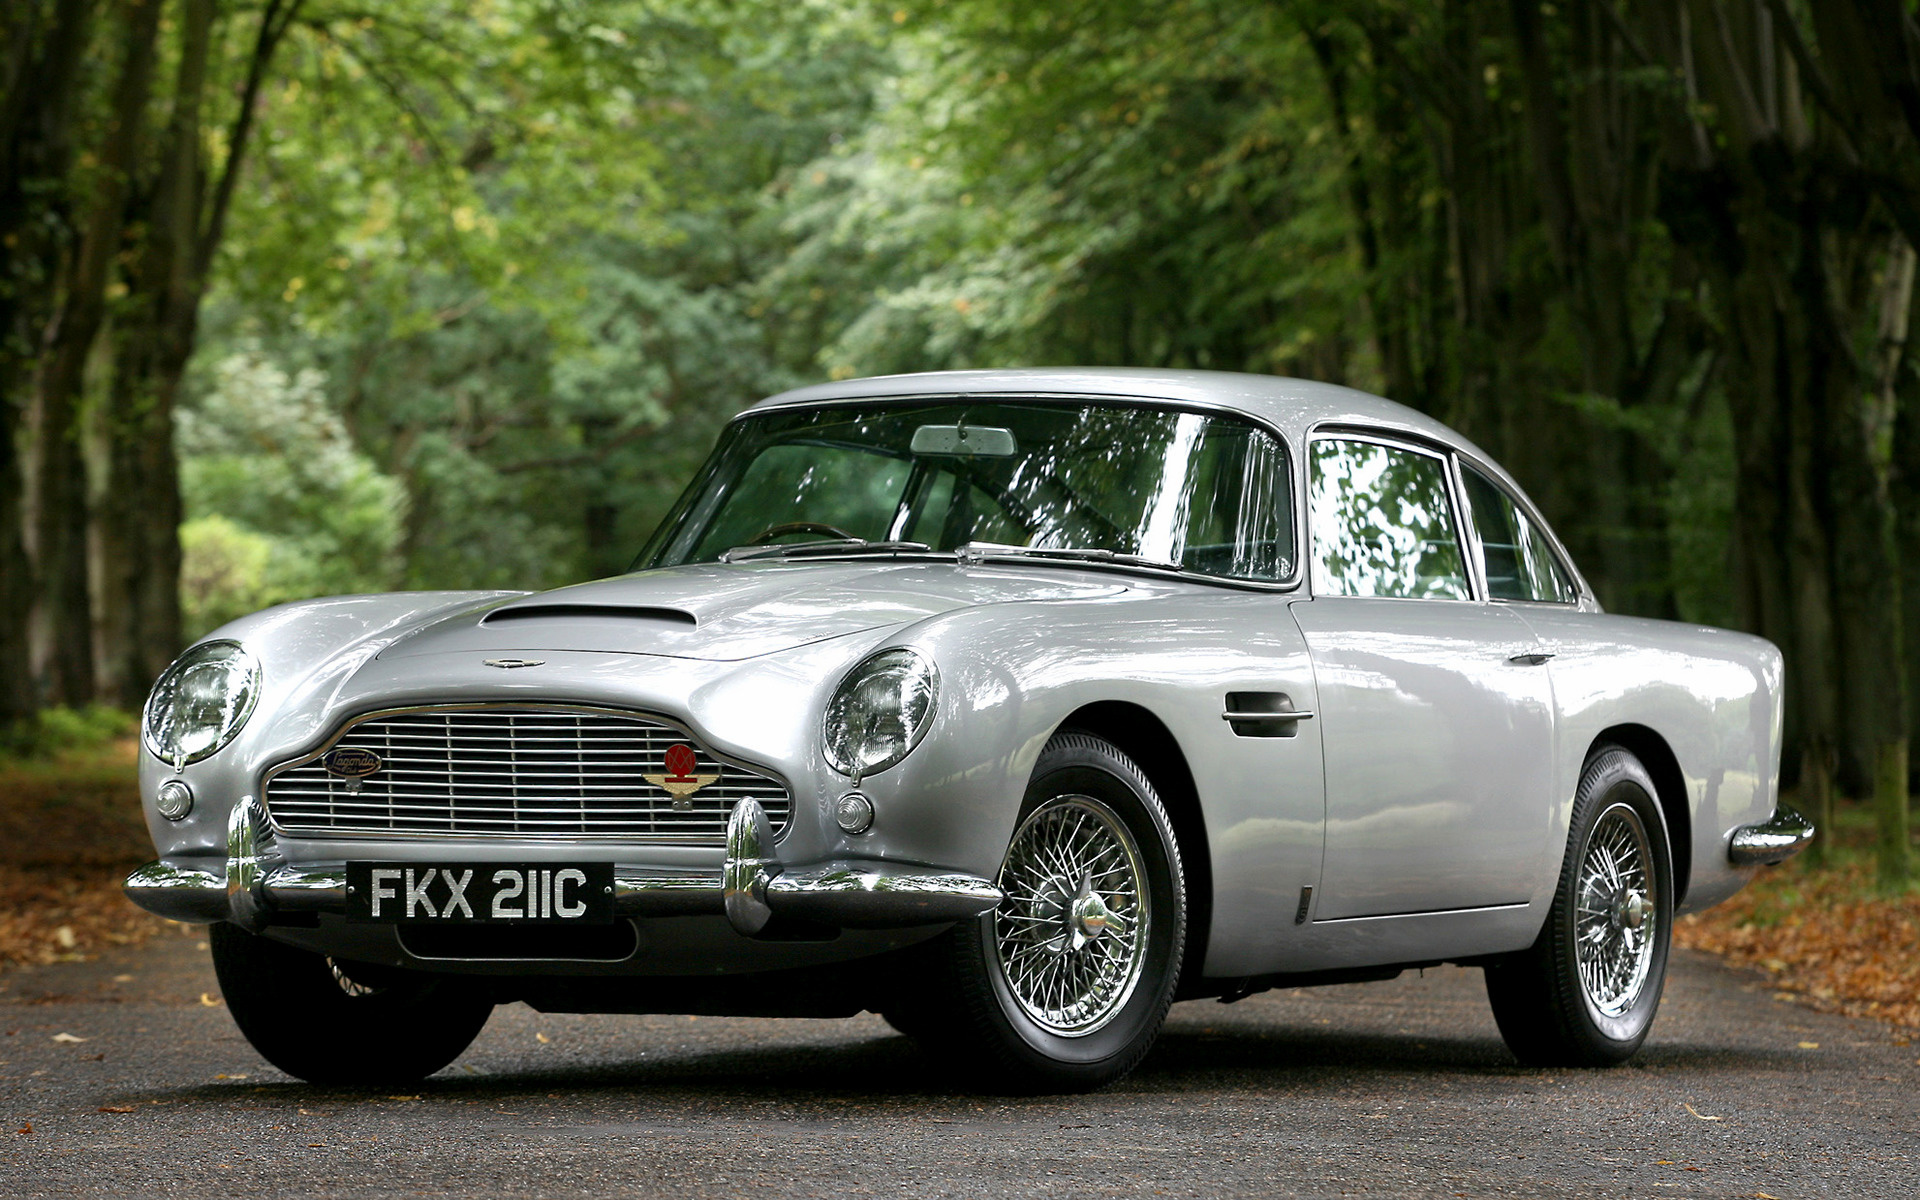 1963 aston martin db5 (uk) - wallpapers and hd images | car pixel